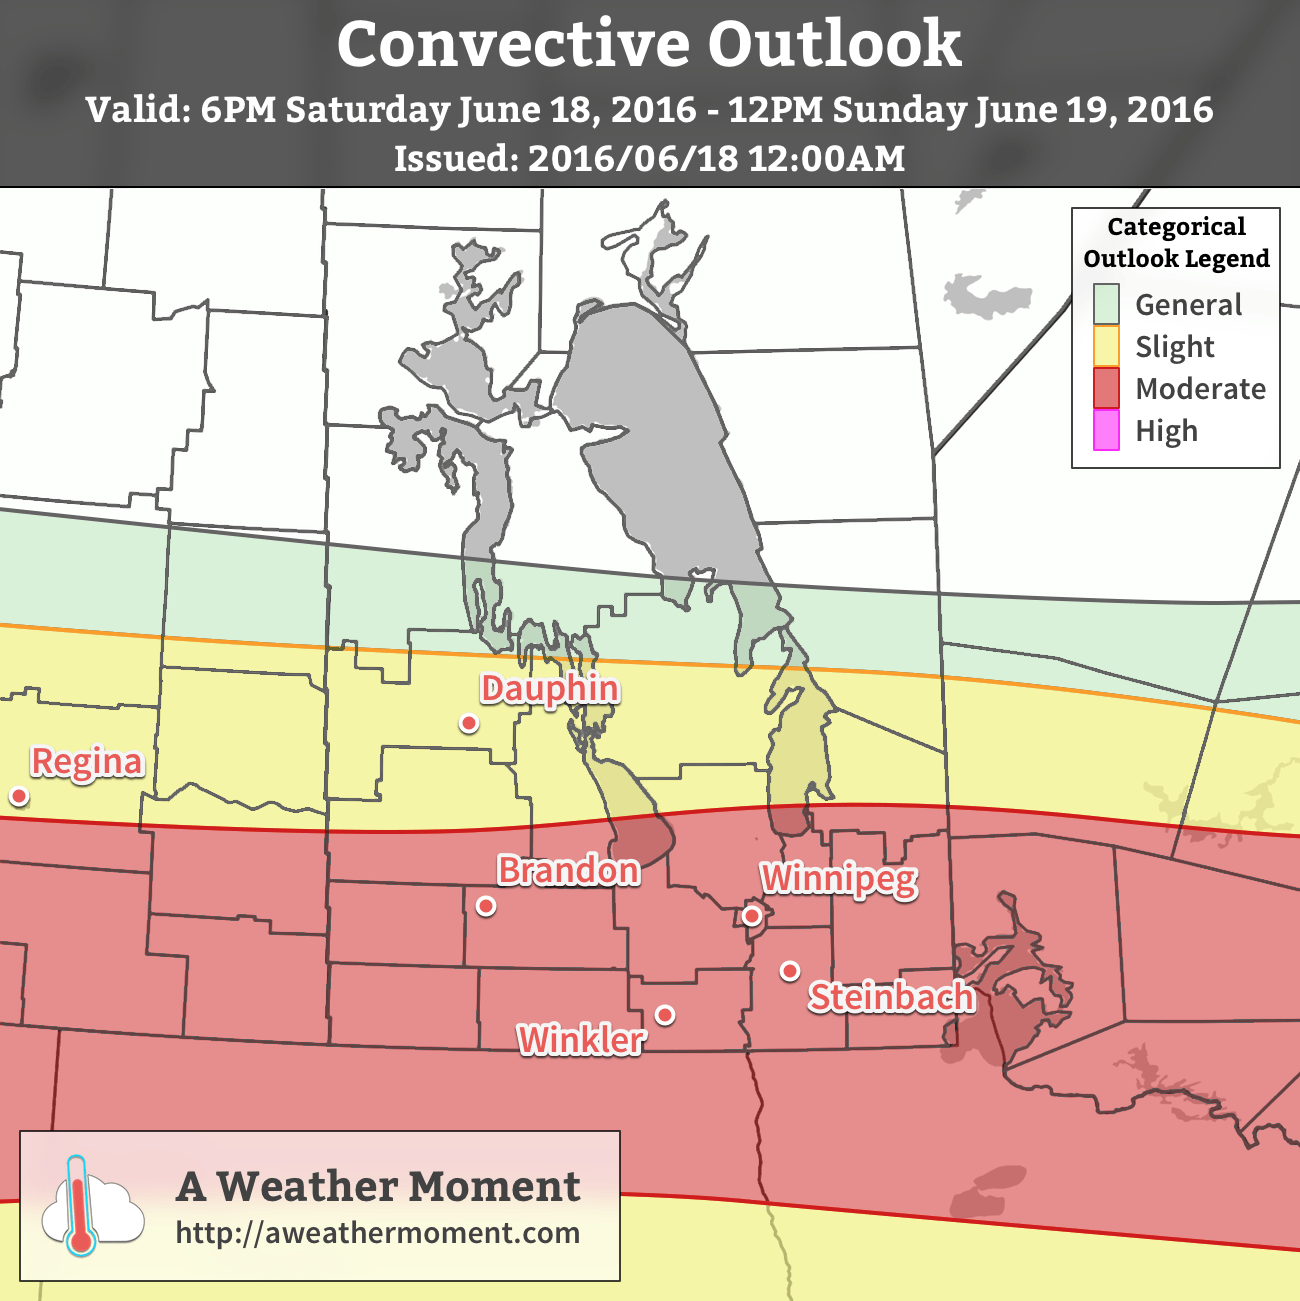 AWM Convective Outlook for June 18/19, 2016